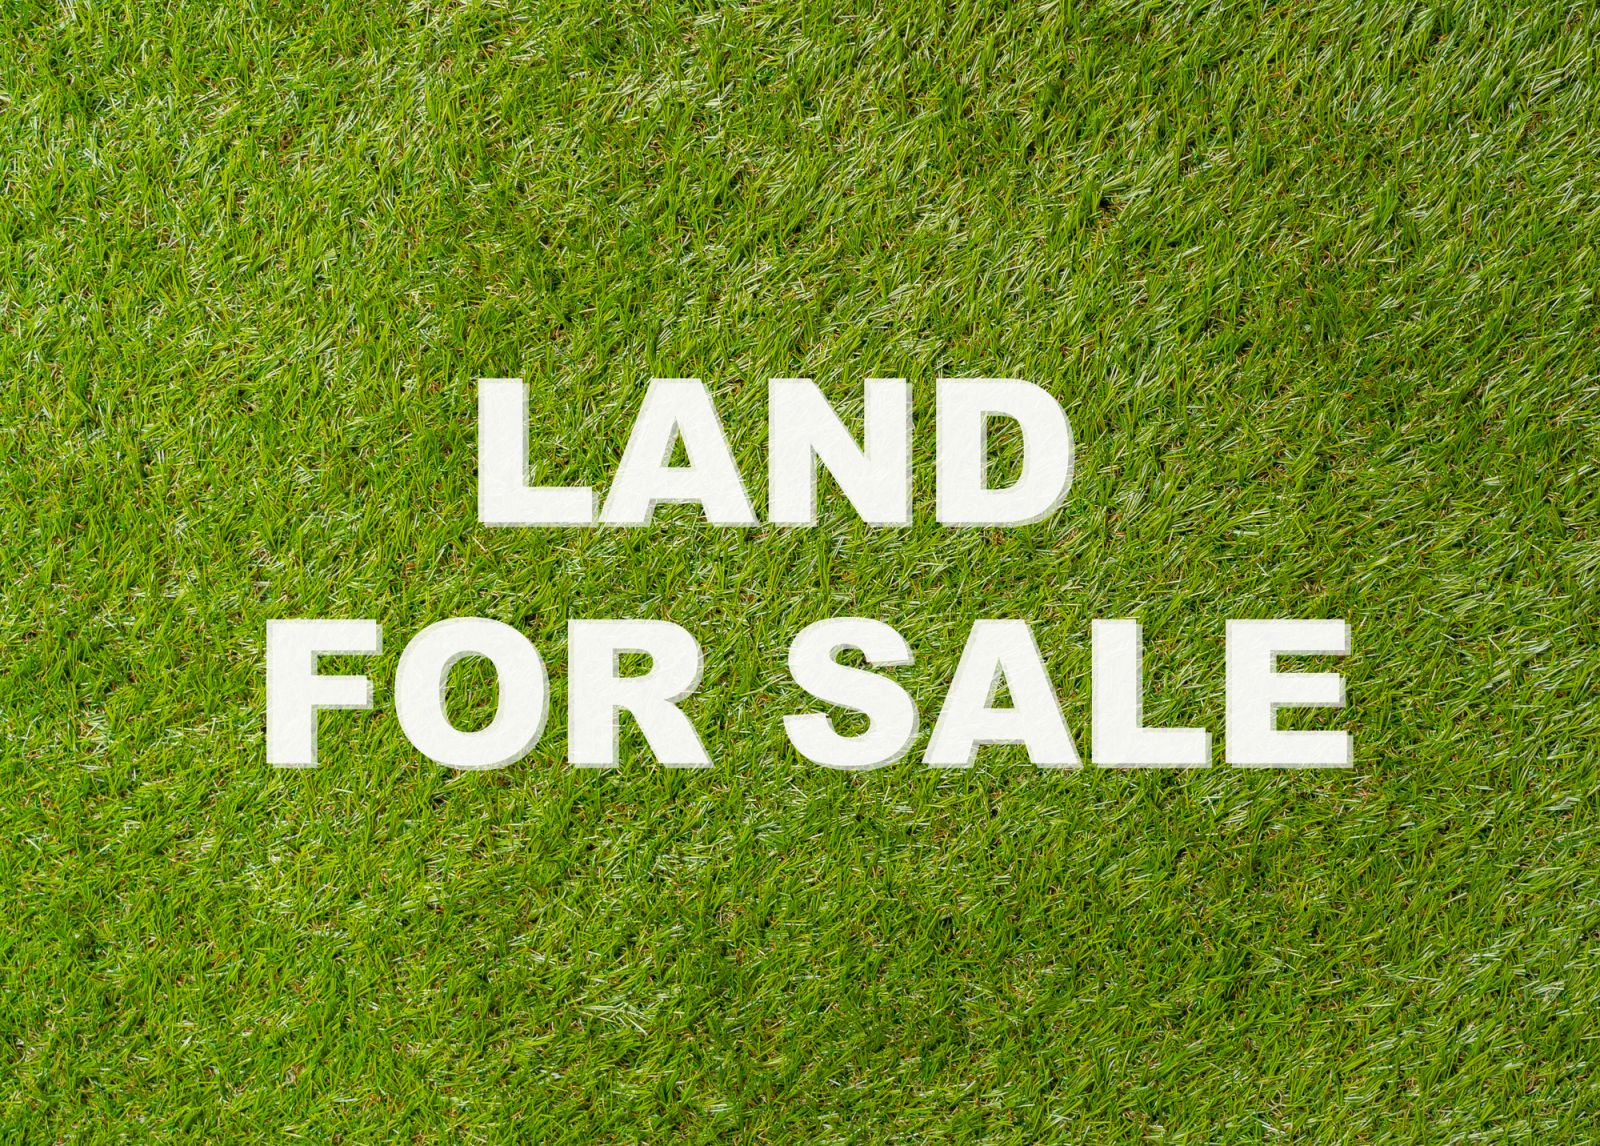 Bare lawn with a land for sale sign, to show land broker services